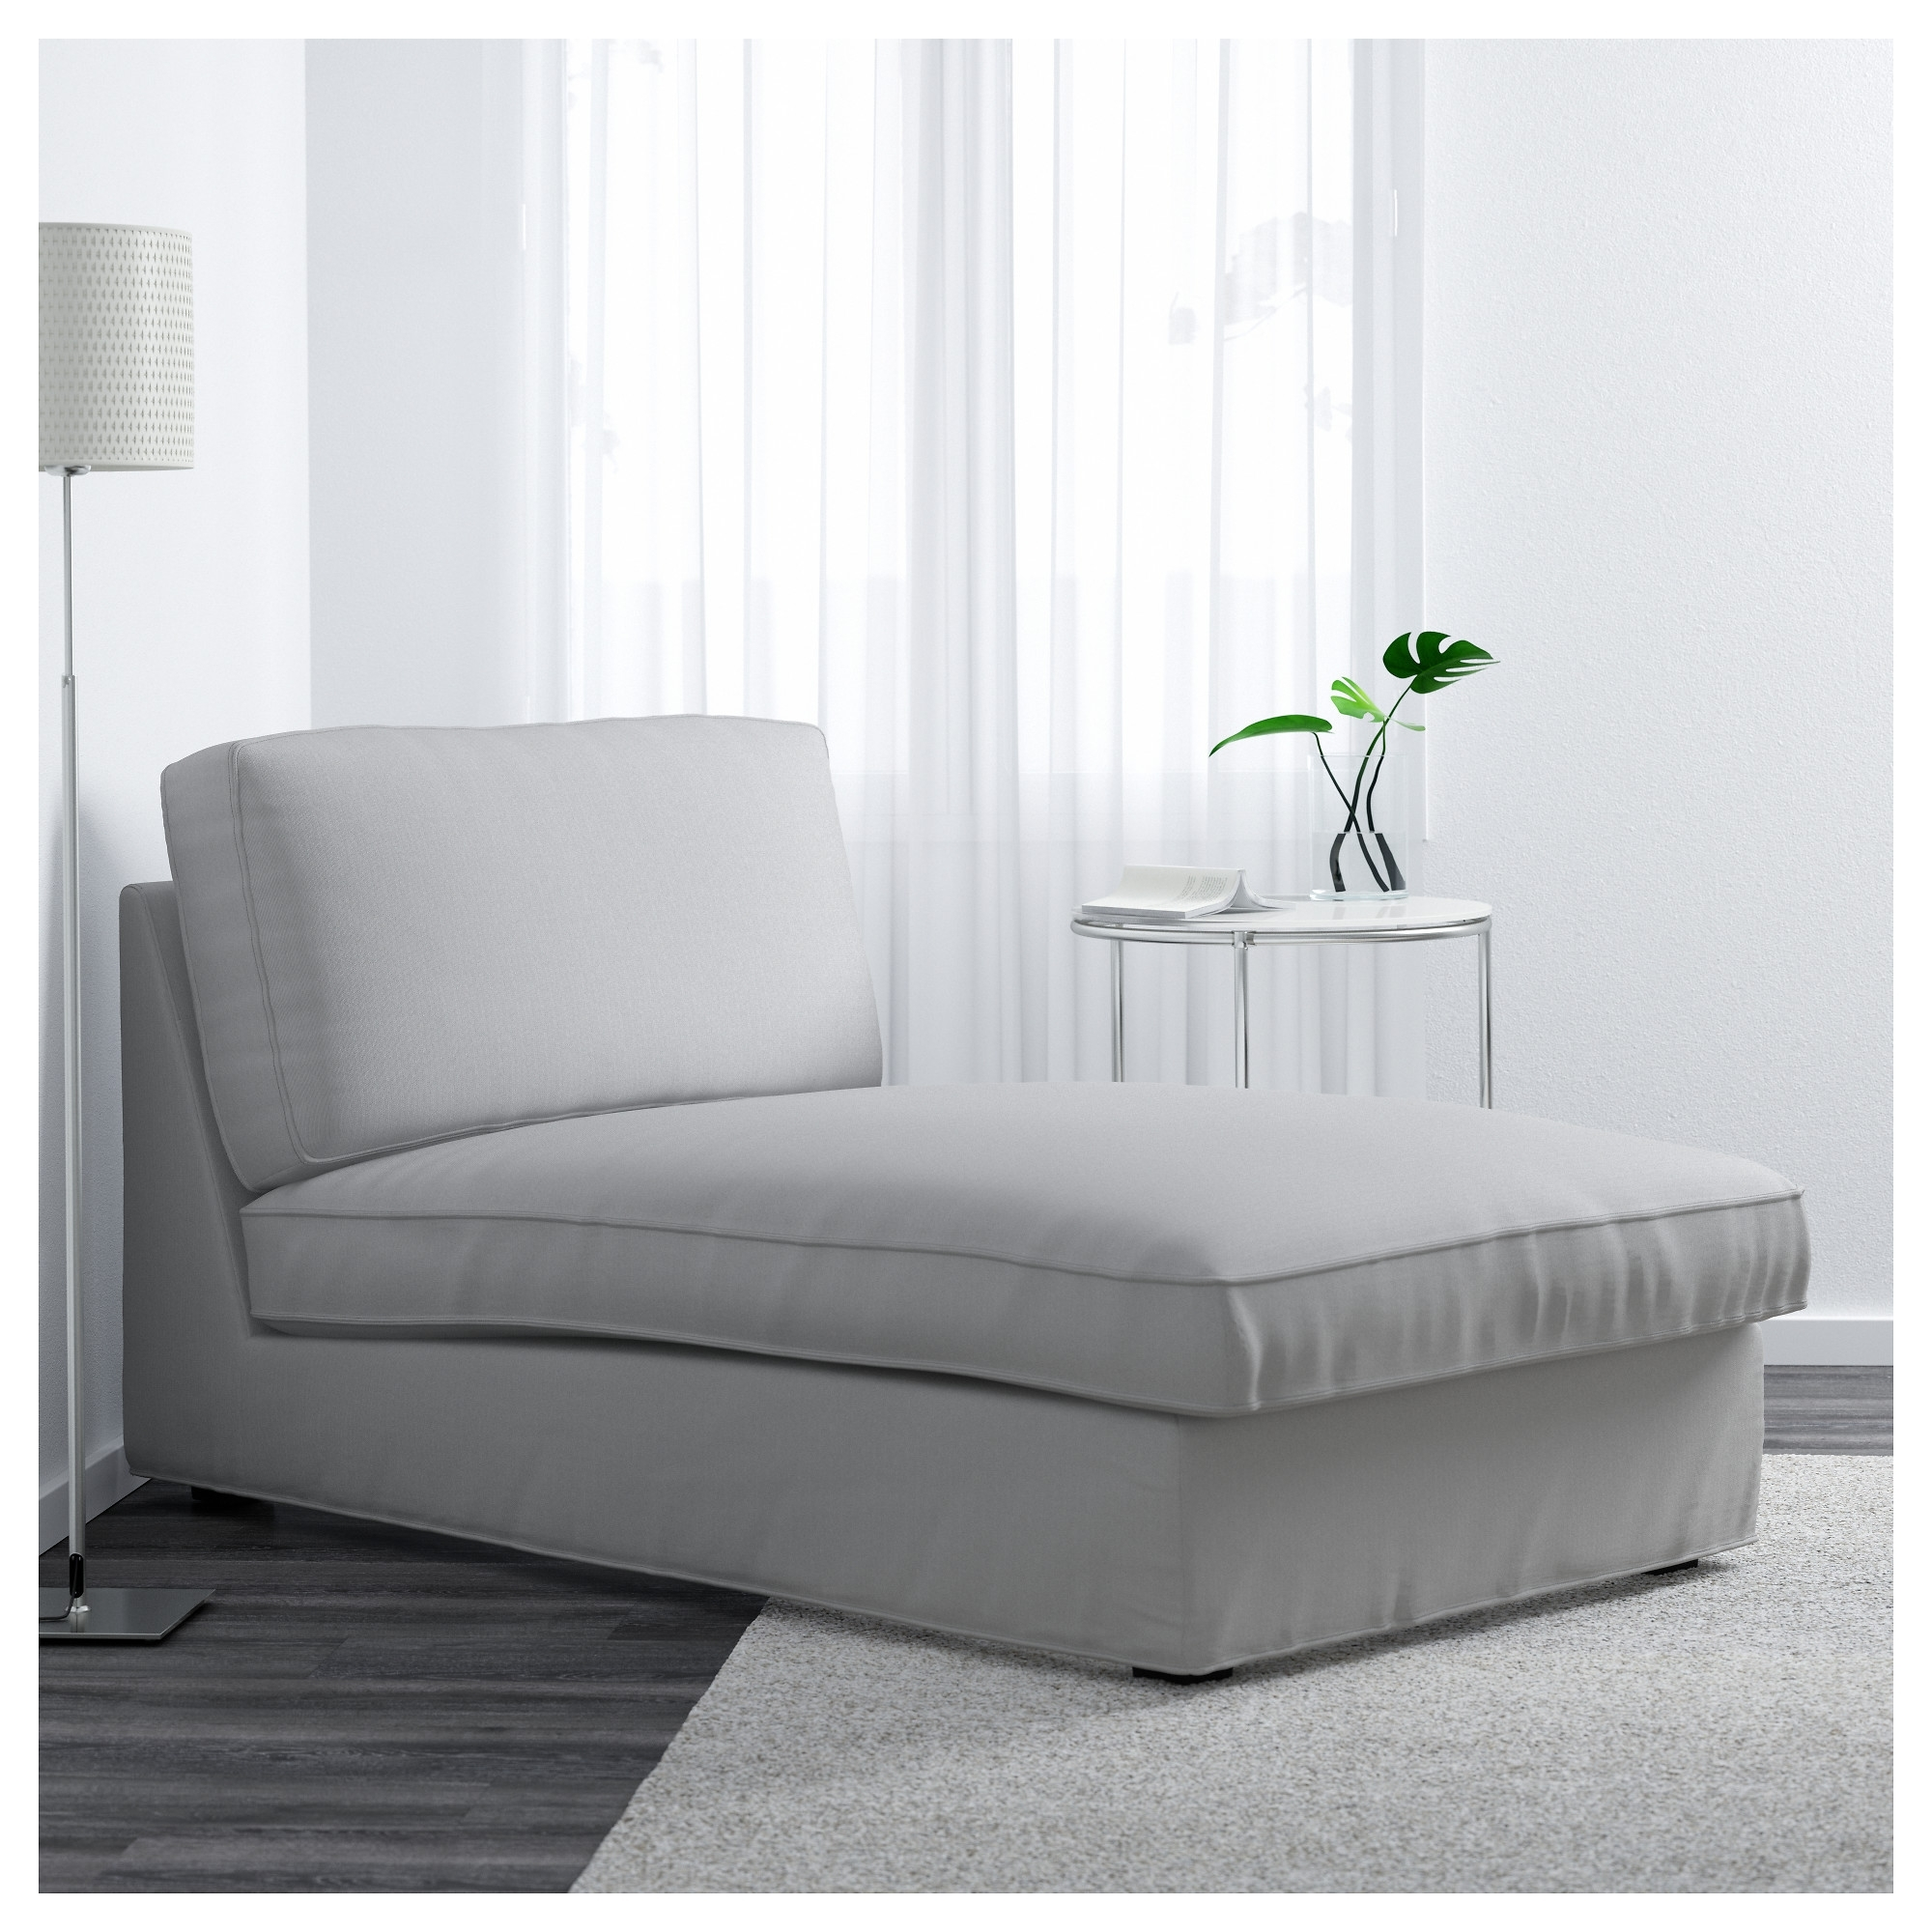 Kivik Chaises Throughout Newest Kivik Chaise Longue Ramna Light Grey – Ikea (Gallery 12 of 15)